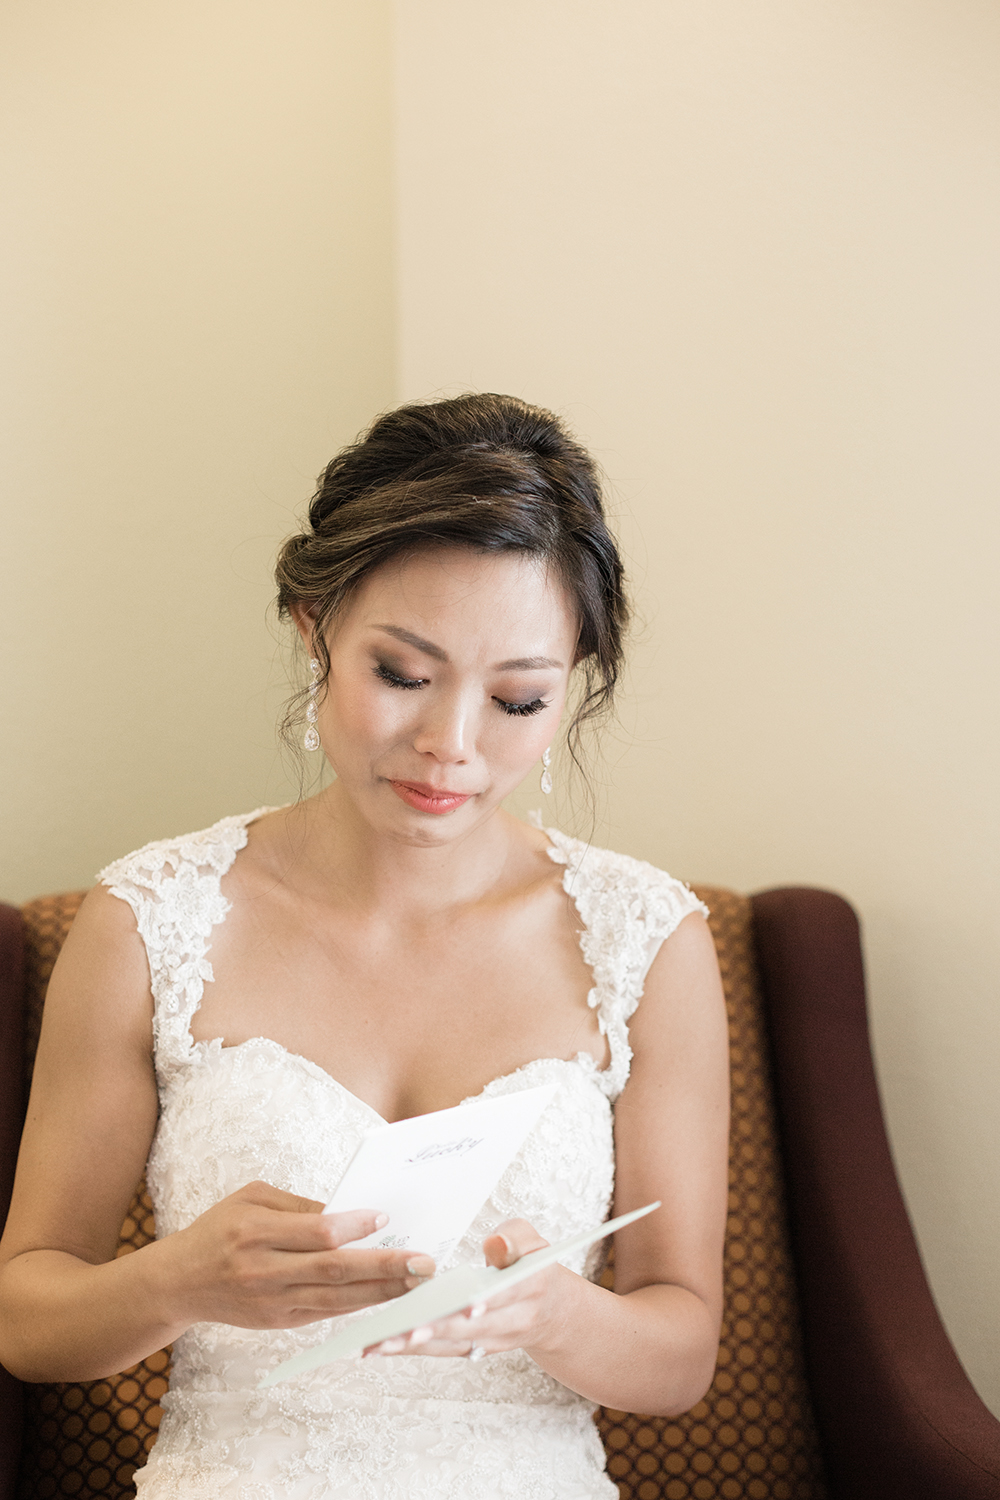 bride getting ready photos from wedding at eagle vines golf club in napa california